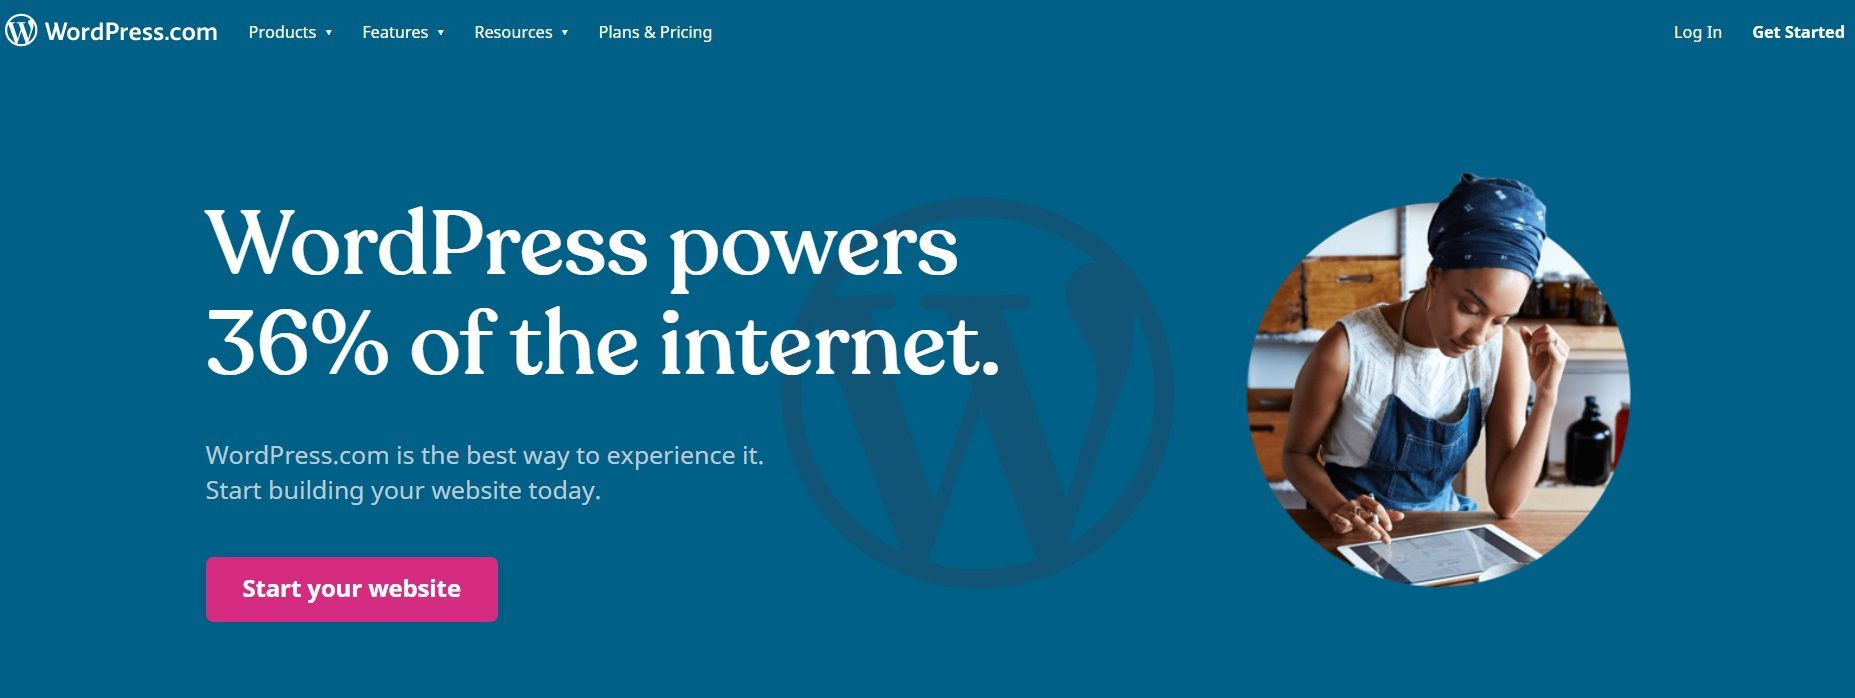 Go to the WordPress home page to begin your blogging journey